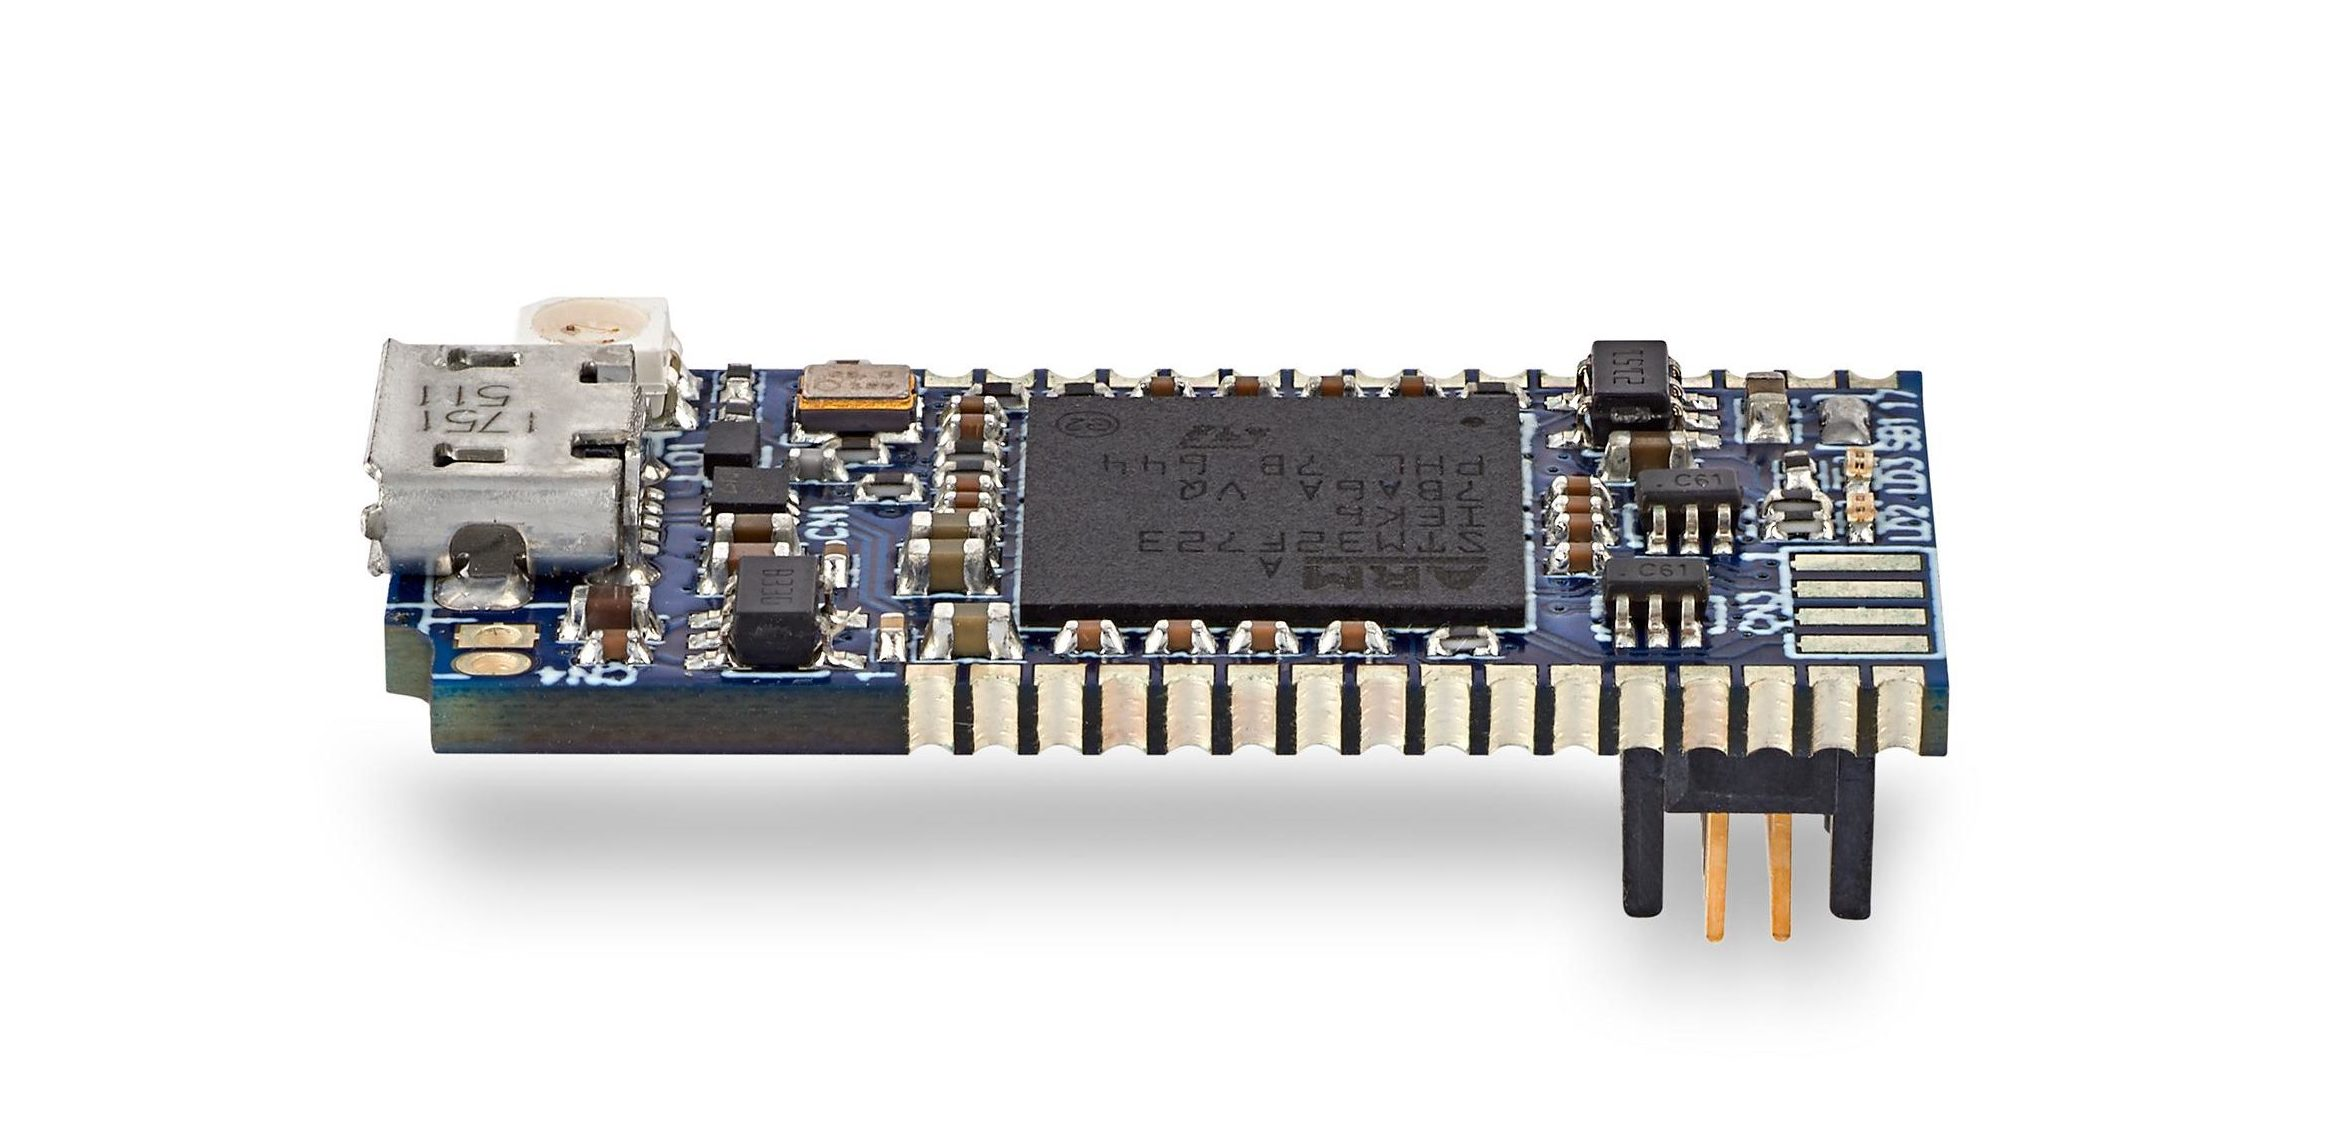 Compact debug probe accelerates STM32 application development